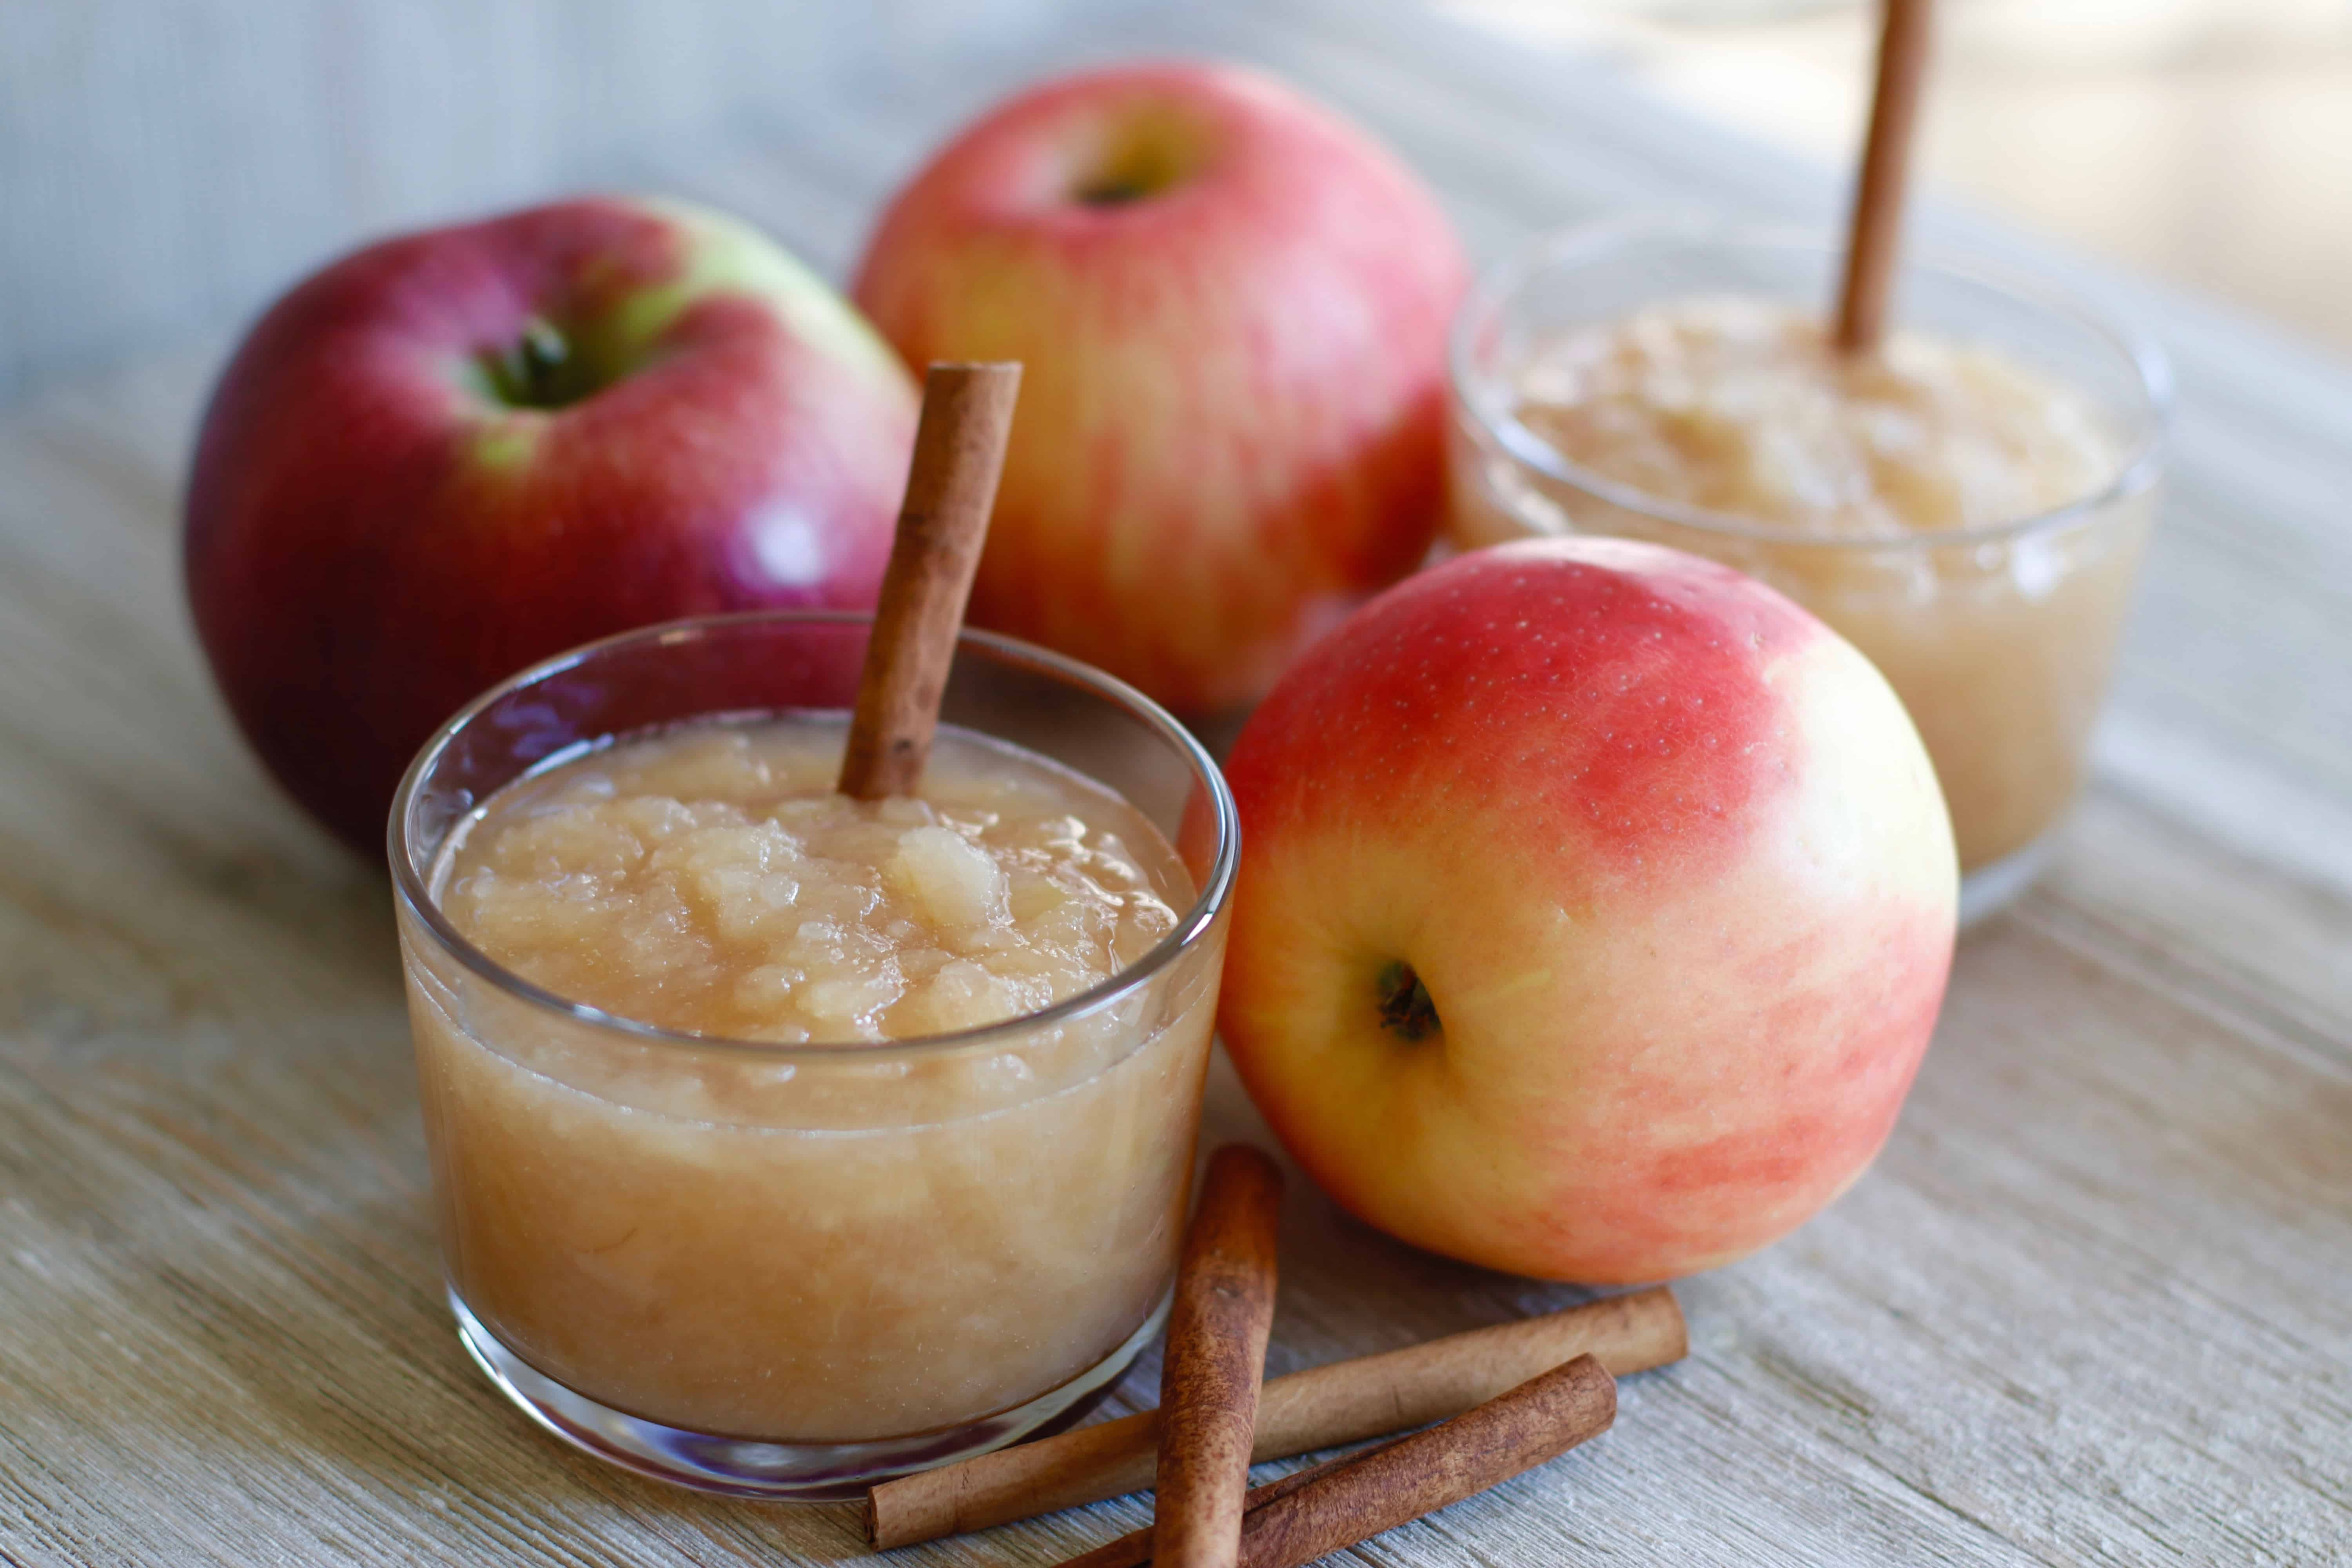 Slow Cooked Apple Sauce